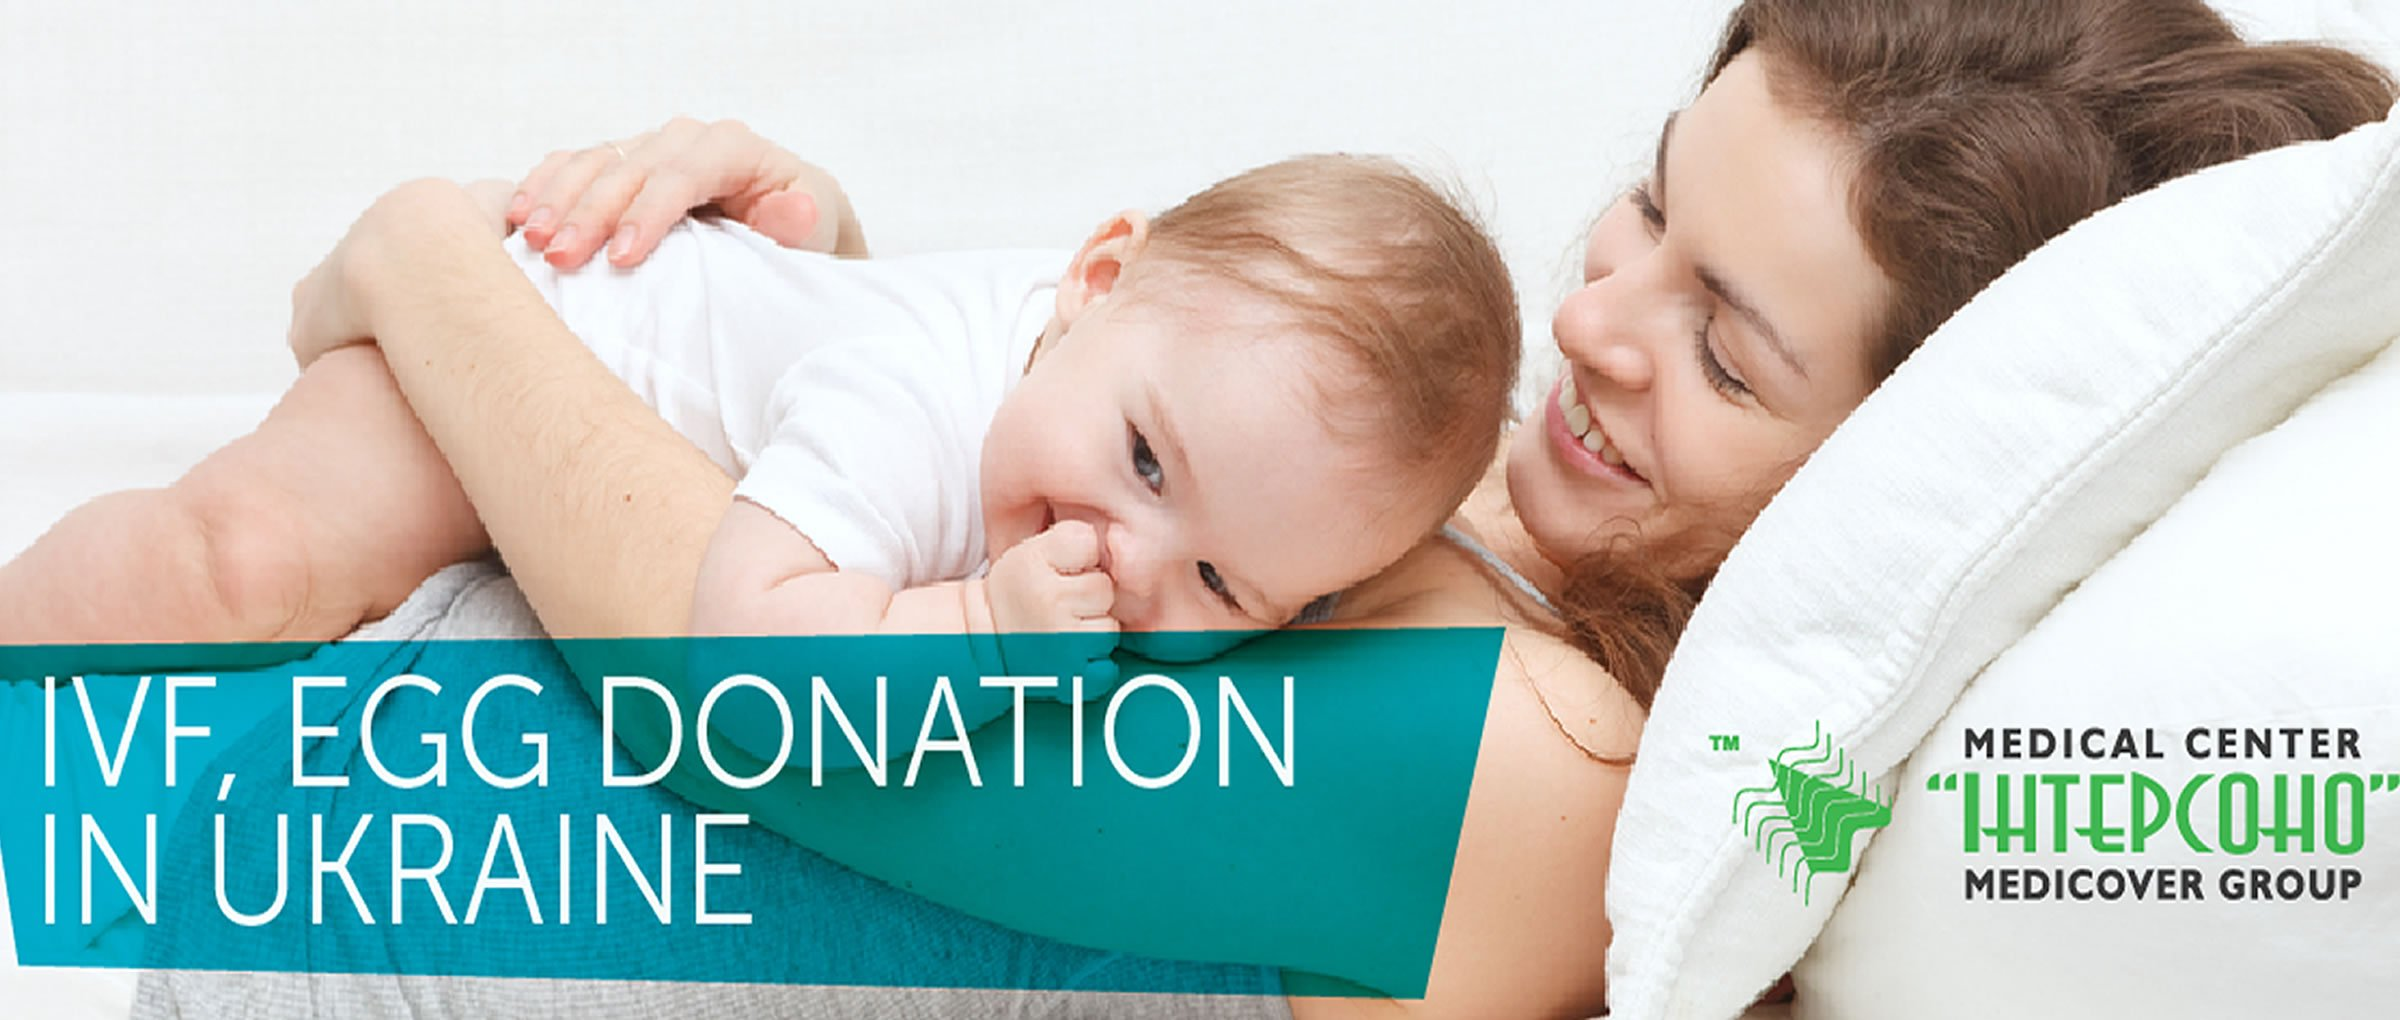 Medical Center Intersono IVF, egg donation in Ukraine